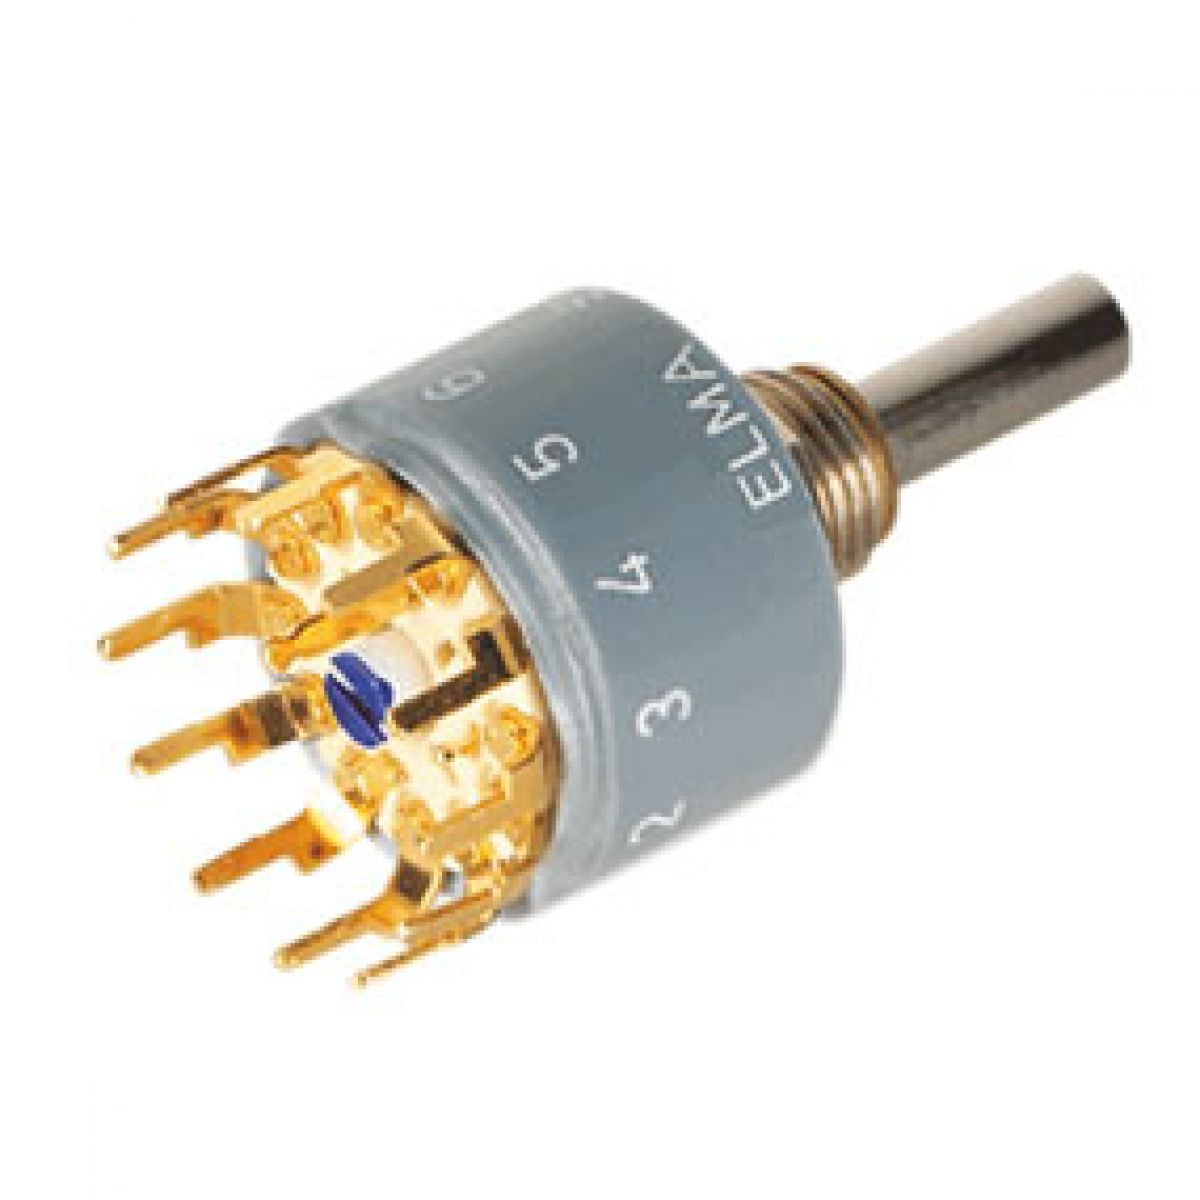 4 Position Rotary Selector Switch Wiring Diagram besides 3 Phase Ac  pressor Wiring Diagram as well Cordless Drill Schematic Diagram moreover Switch Wiring Diagram further Ac Rotary Selector Switch Wiring Diagram. on salzer switch wiring diagram